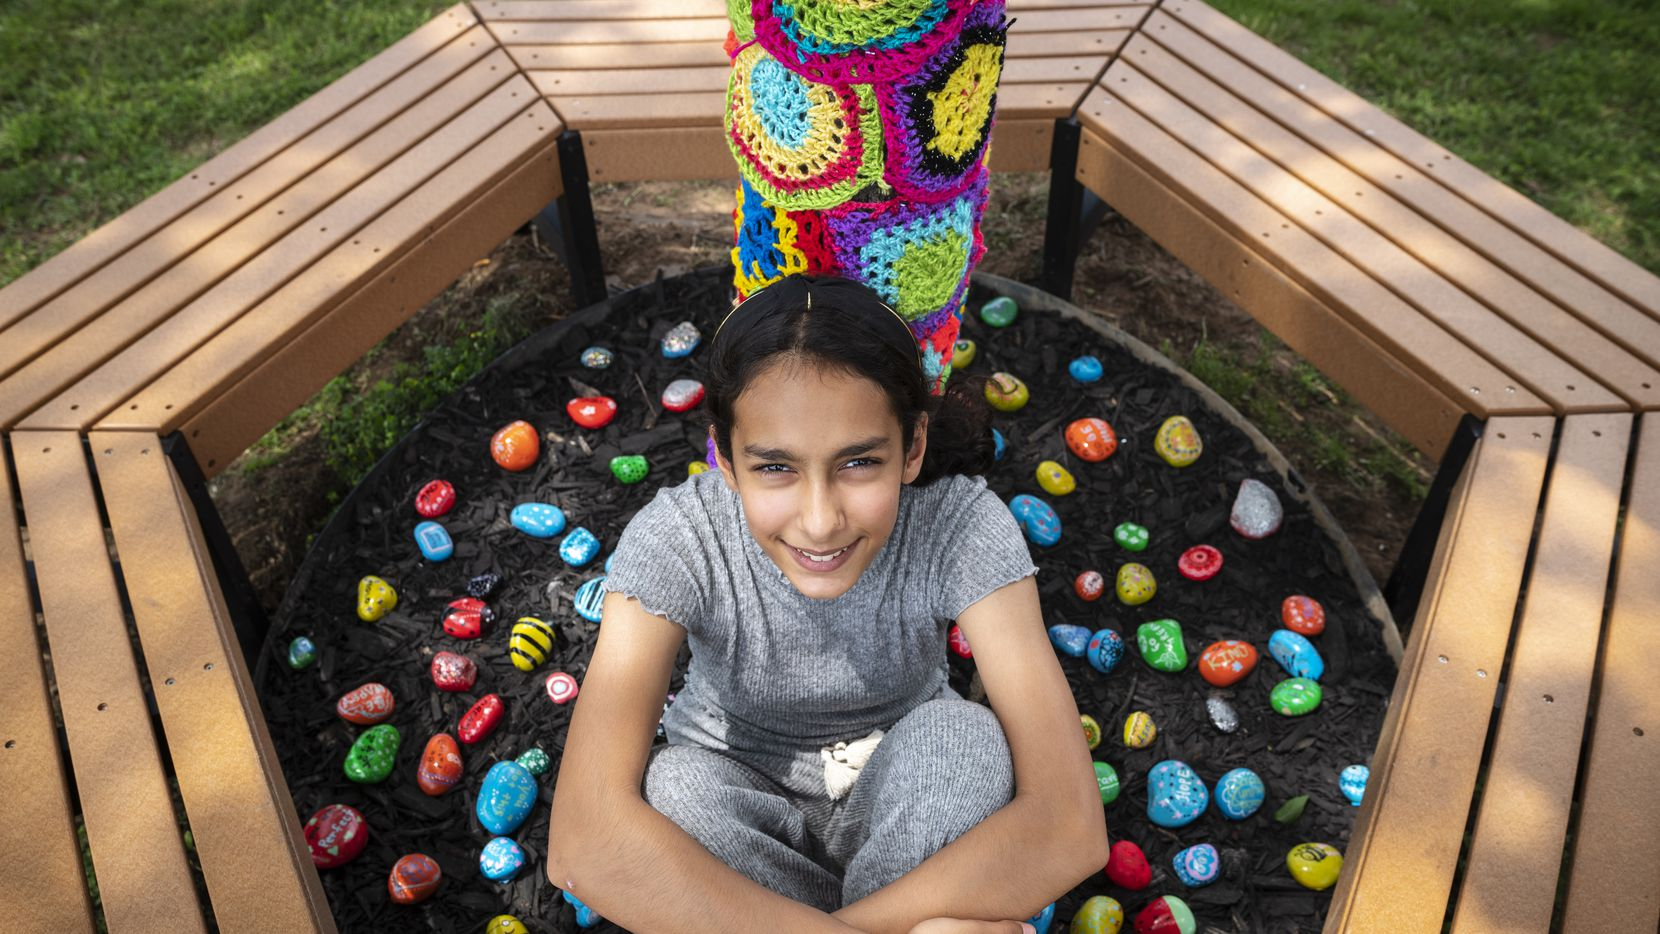 Anya Ali, 12, spearheaded a project to decorate a tree trunk with crochet for a new reading area at the Bedford Public Library. The project includes a sitting area and painted-rock decorations.